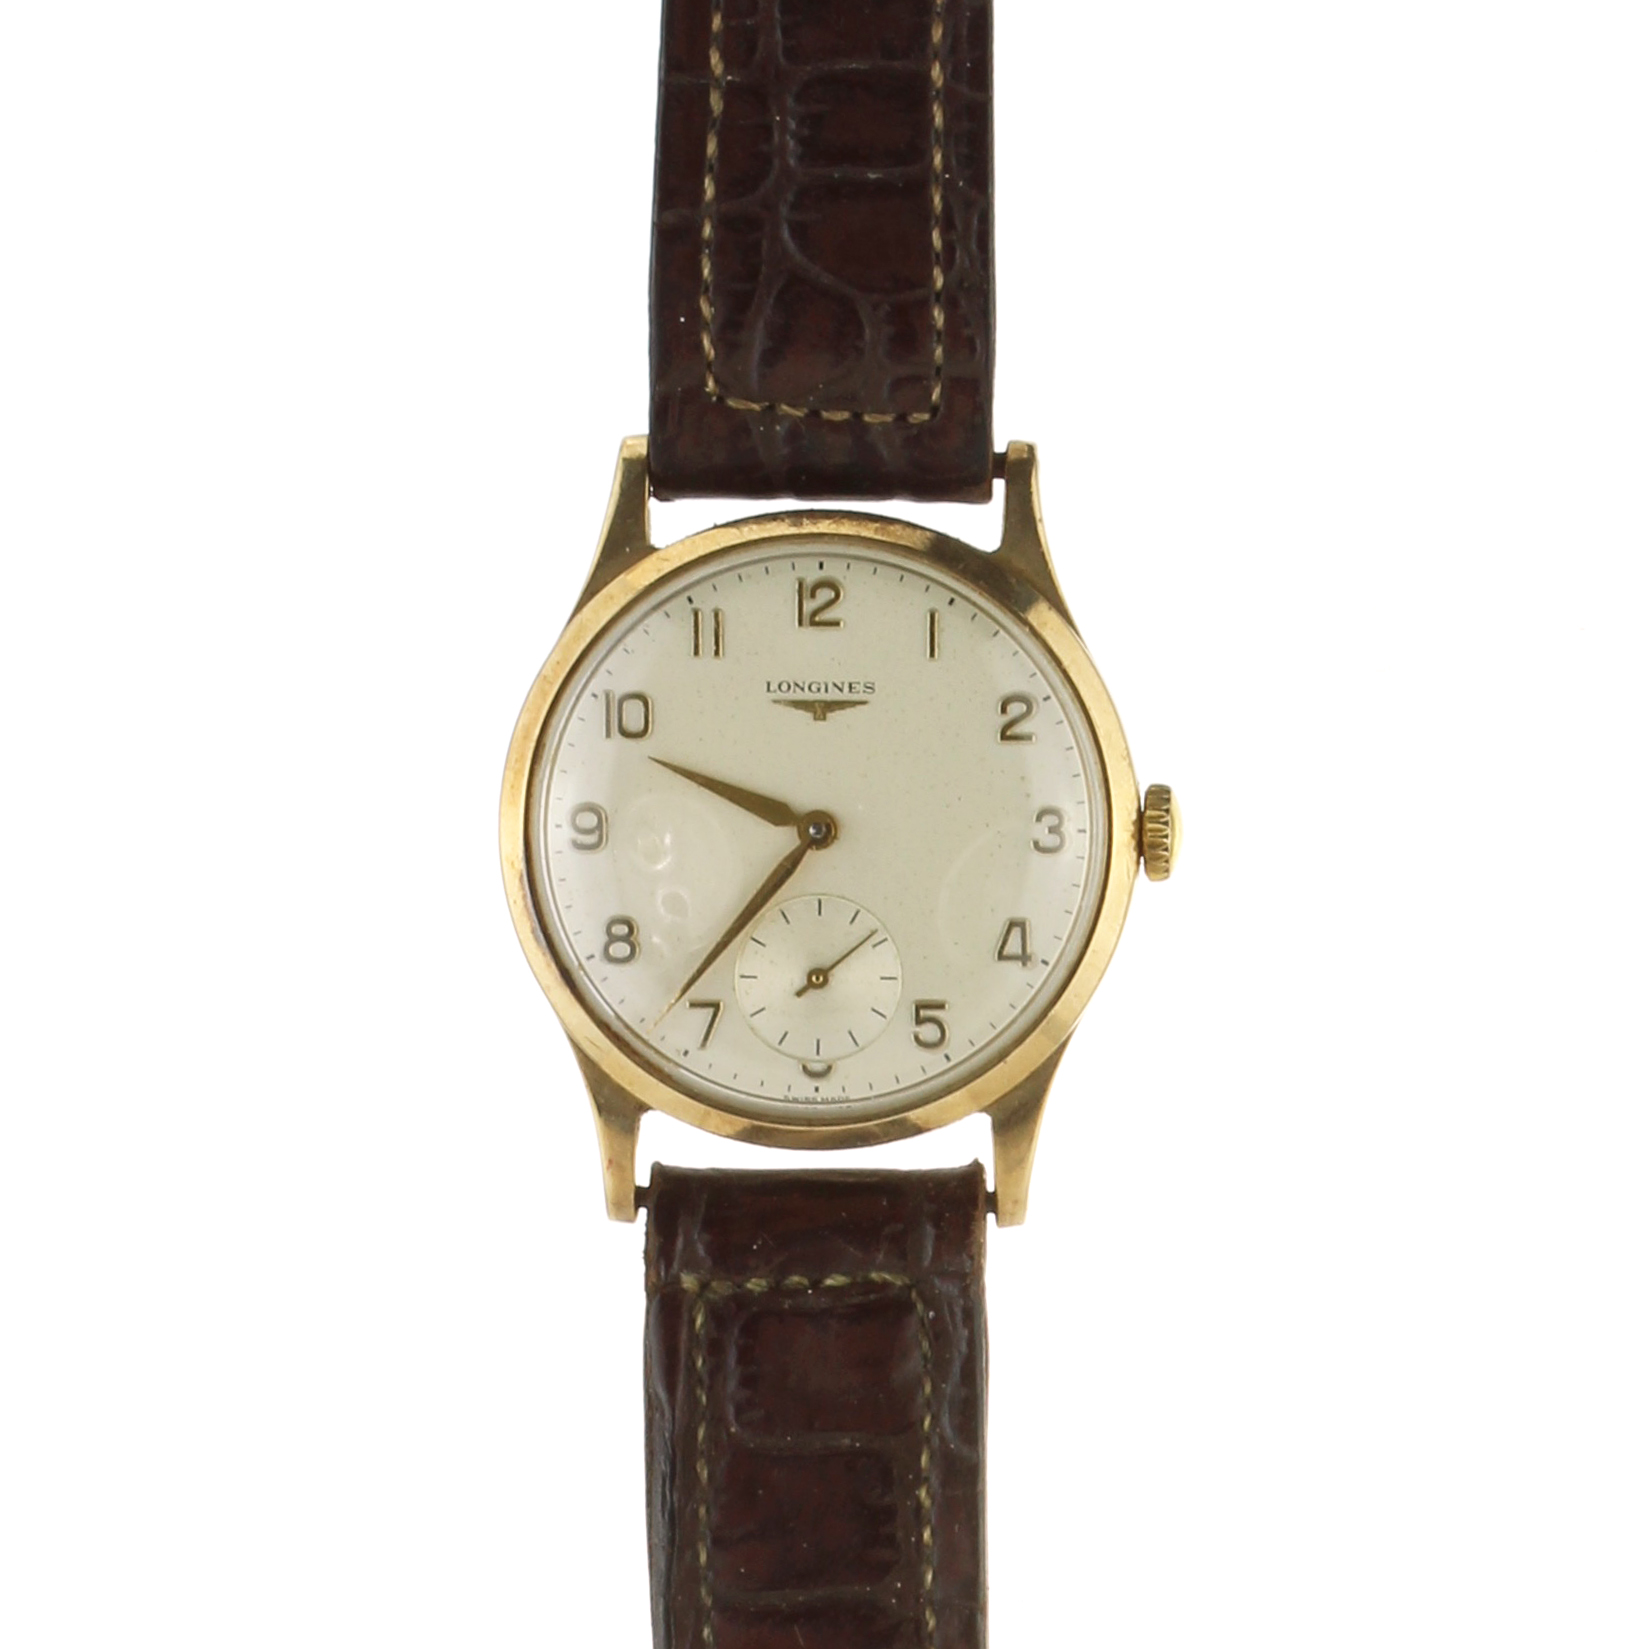 Los 57 - LONGINES A 9ct yellow gold wristwatch by Longines on a leather strap.